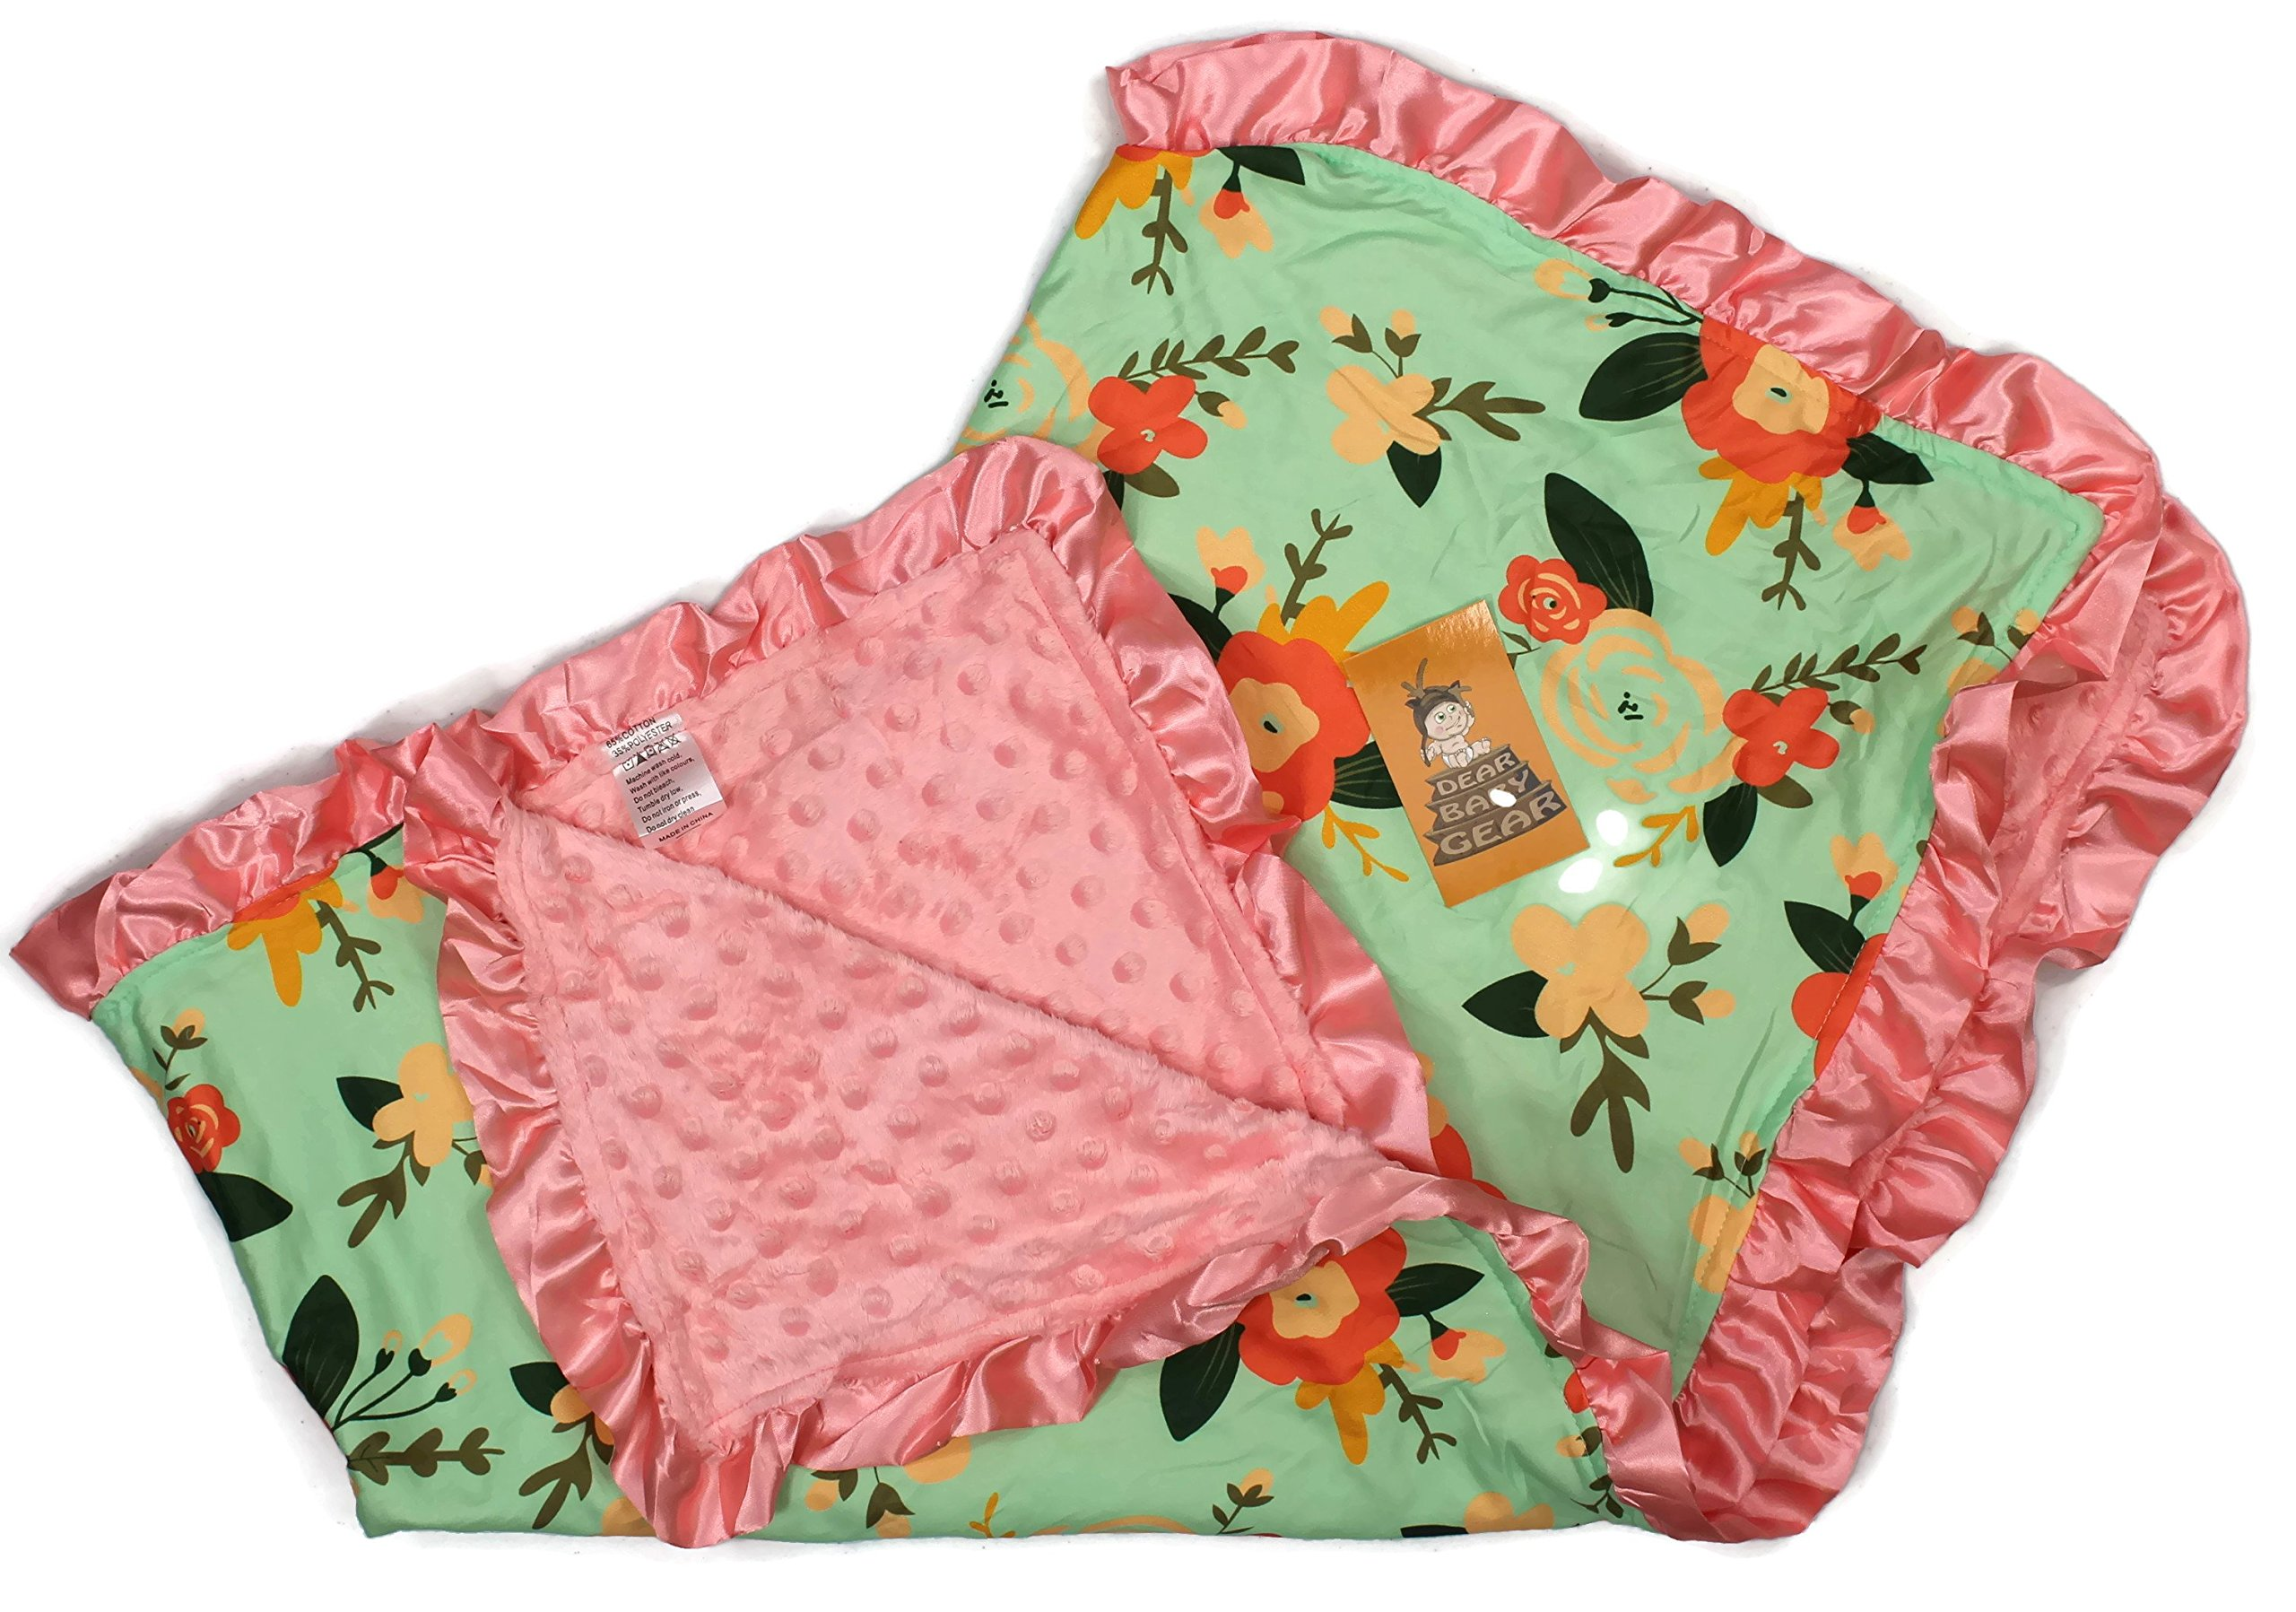 Dear Baby Gear Baby Blankets, Abstact Coral Floral Mint, Coral Minky, 32 inches by 32 inches